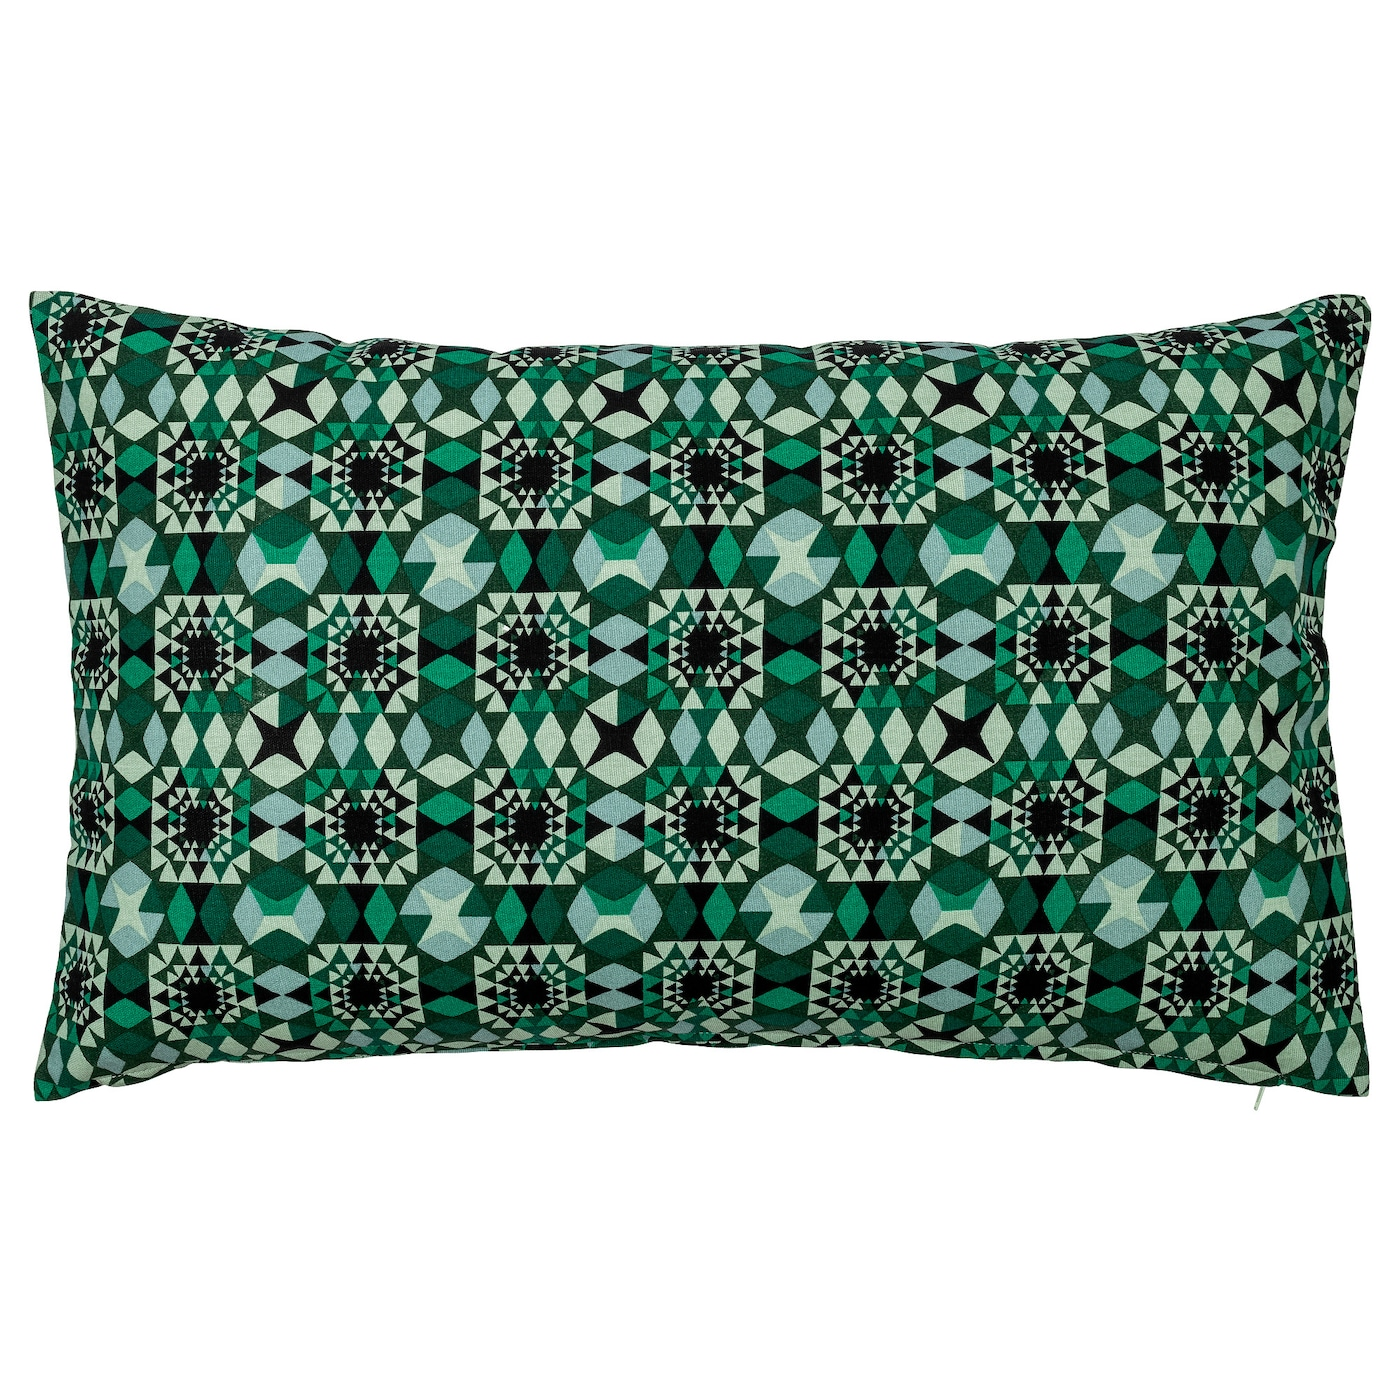 Jorid cushion cover green 40x65 cm ikea - Chaise de jardin solide ...